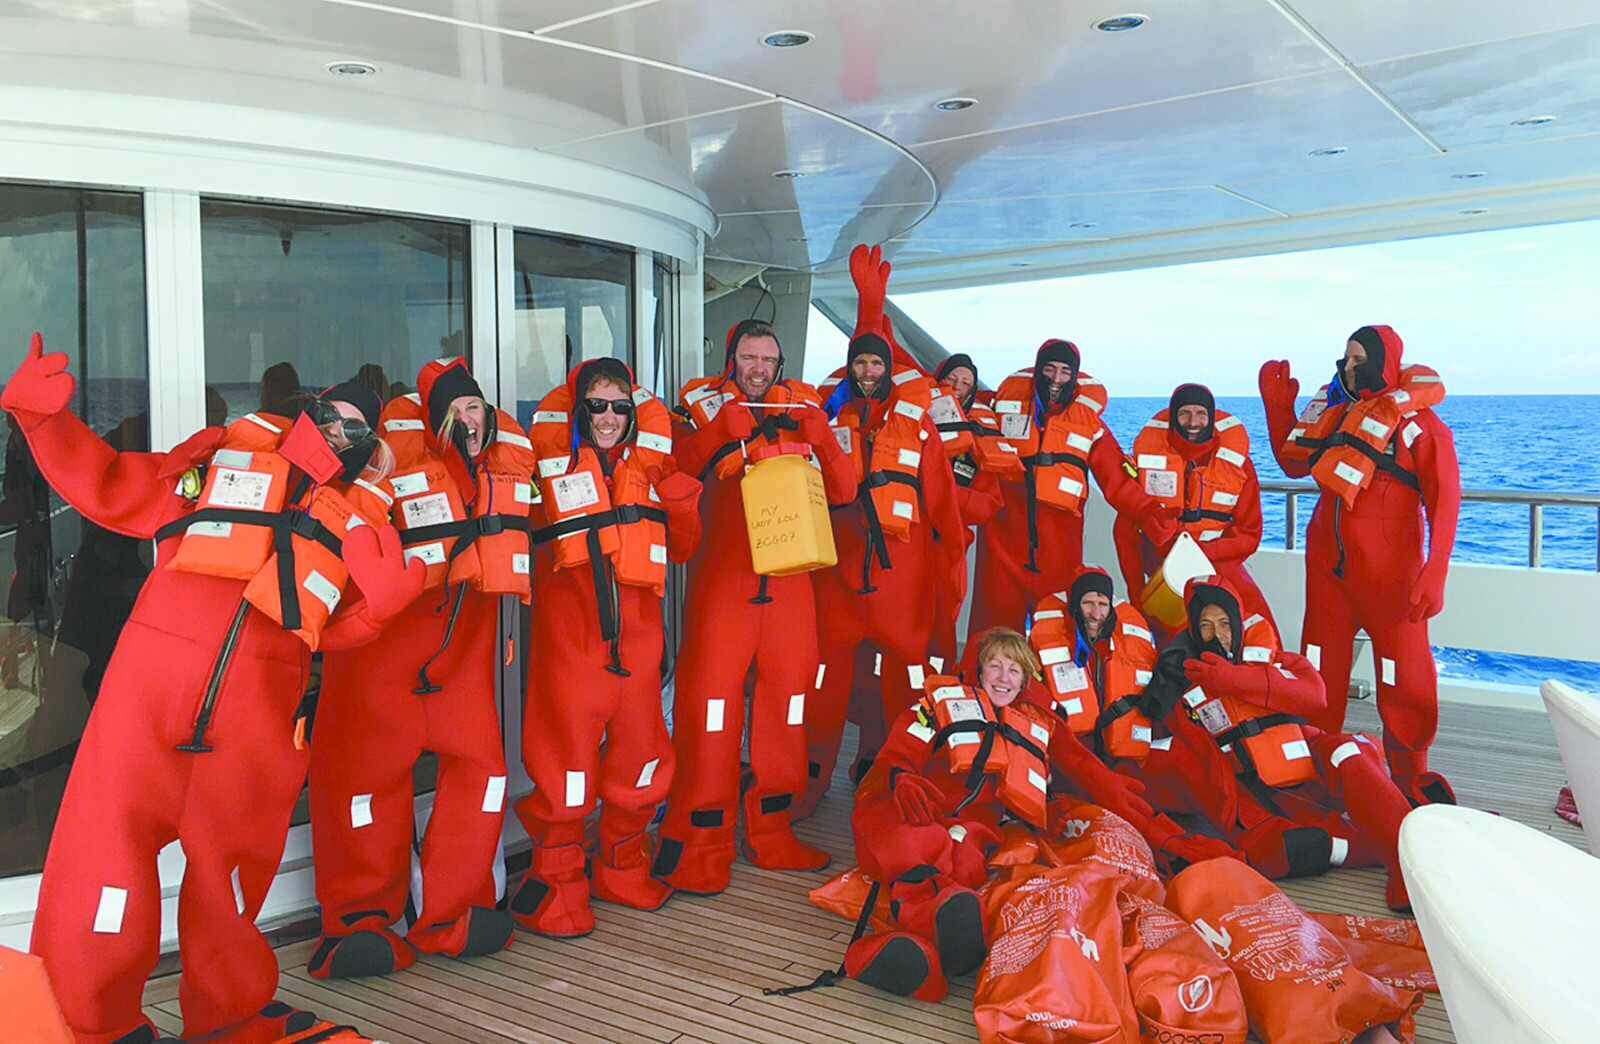 ALL HANDS ON DECK:The crew of the M/Y Lady Lola are bundled up in immersion suits during a drill enroute to La Paz. PHOTO/DAVID A. McDONALD